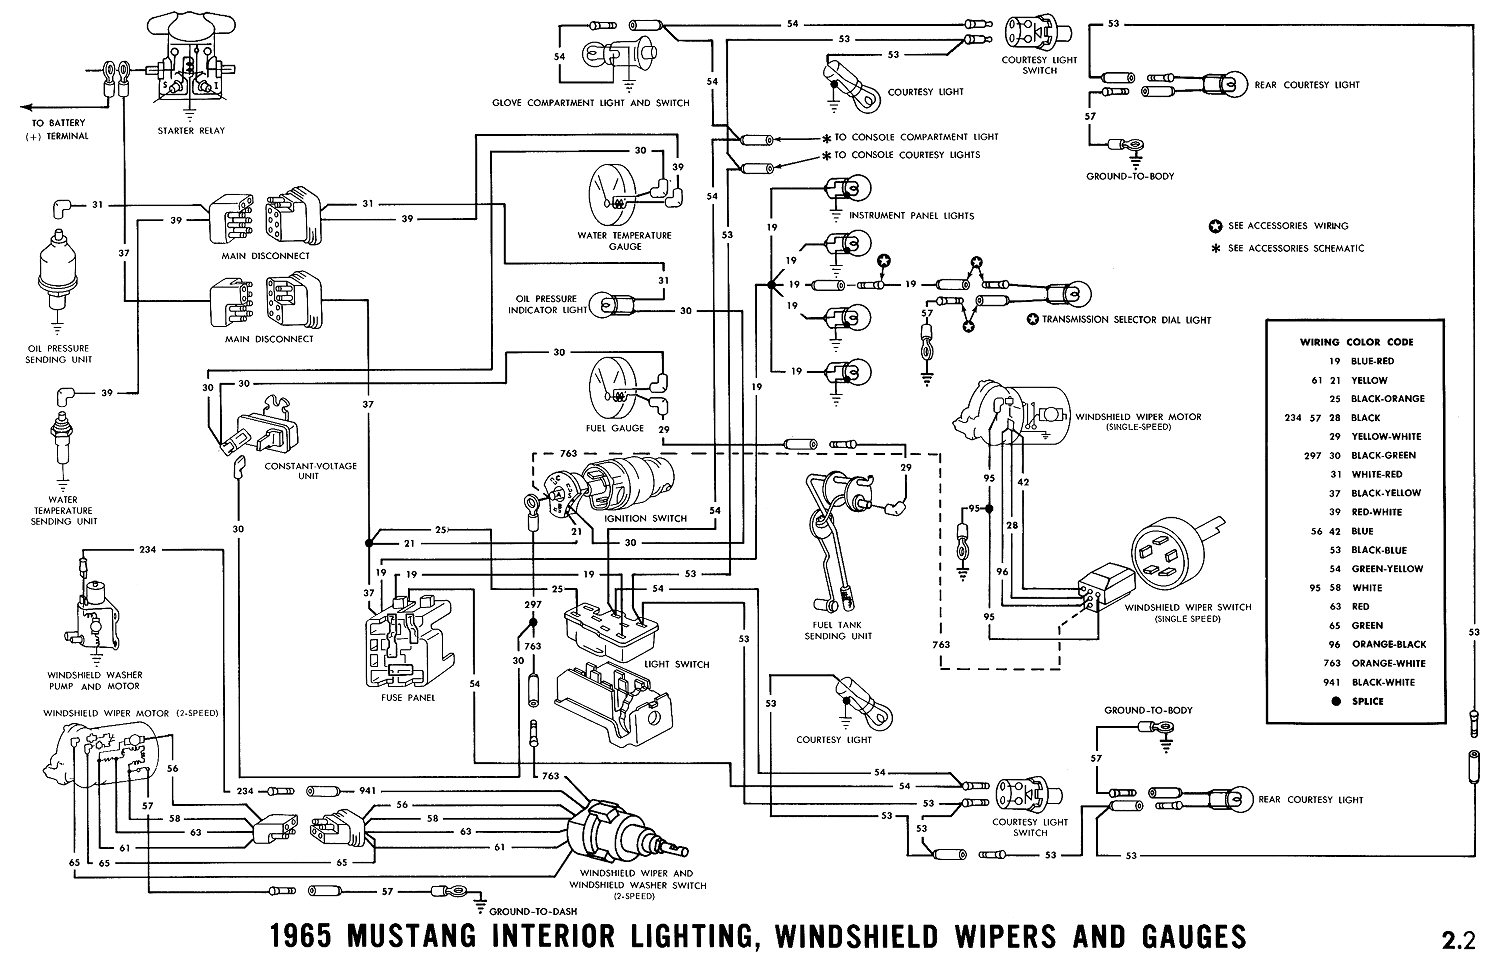 F750 Coolant Gauge Wiring Schematic Worksheet And Diagram 2005 Fuse Box 1965 Comet Detailed Schematics Rh Mrskindsclass Com 1967 Ford F100